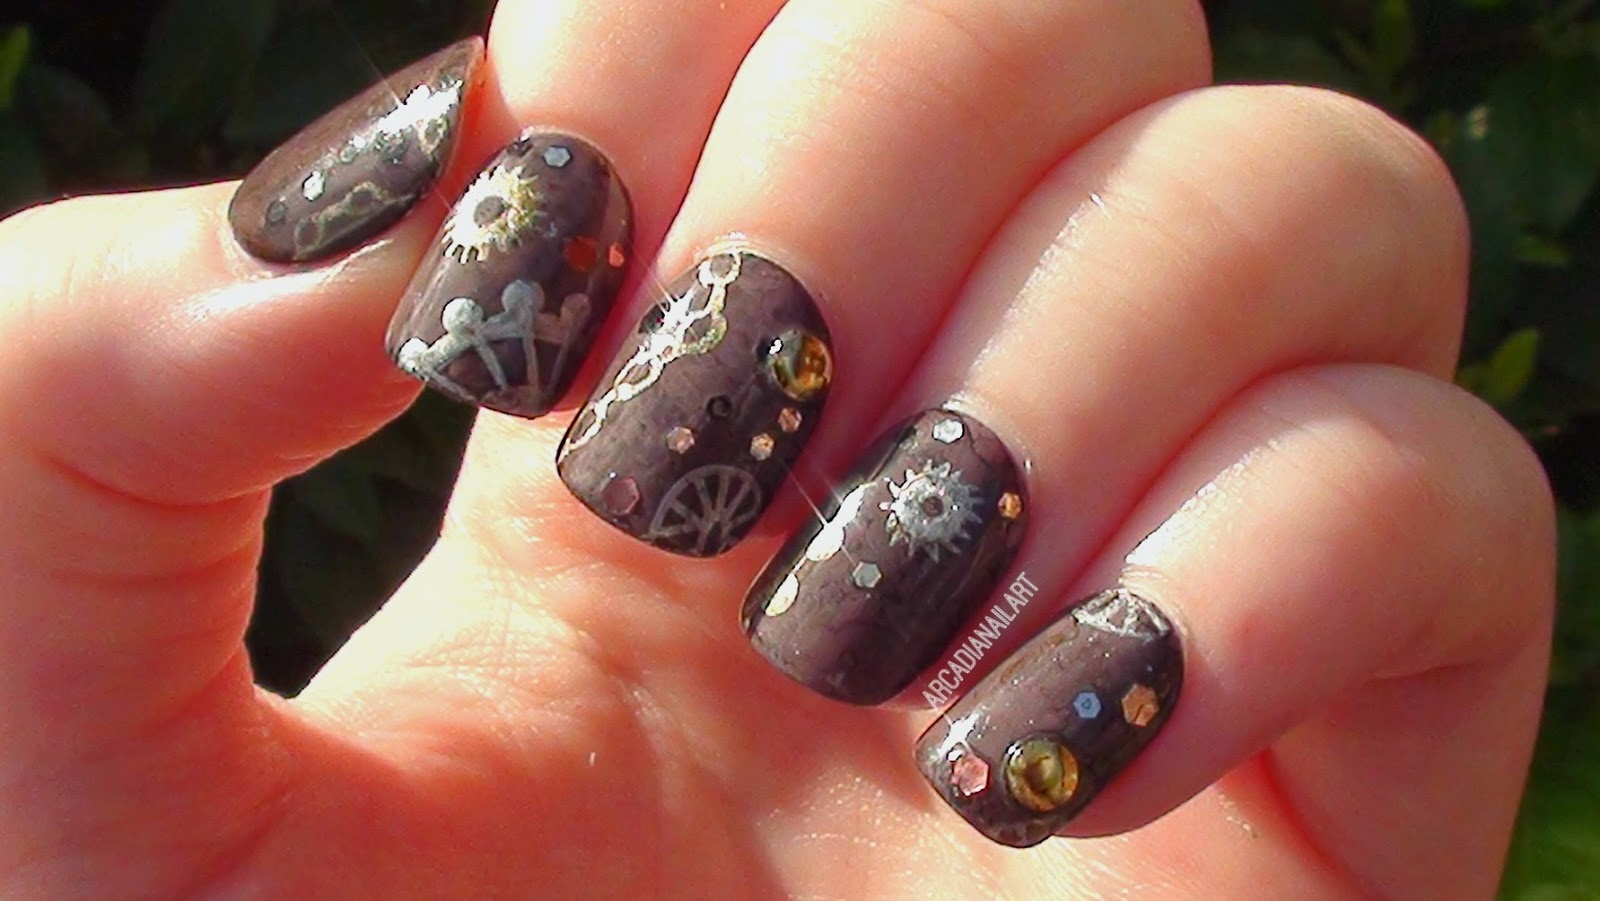 Vintage Steampunk Nails